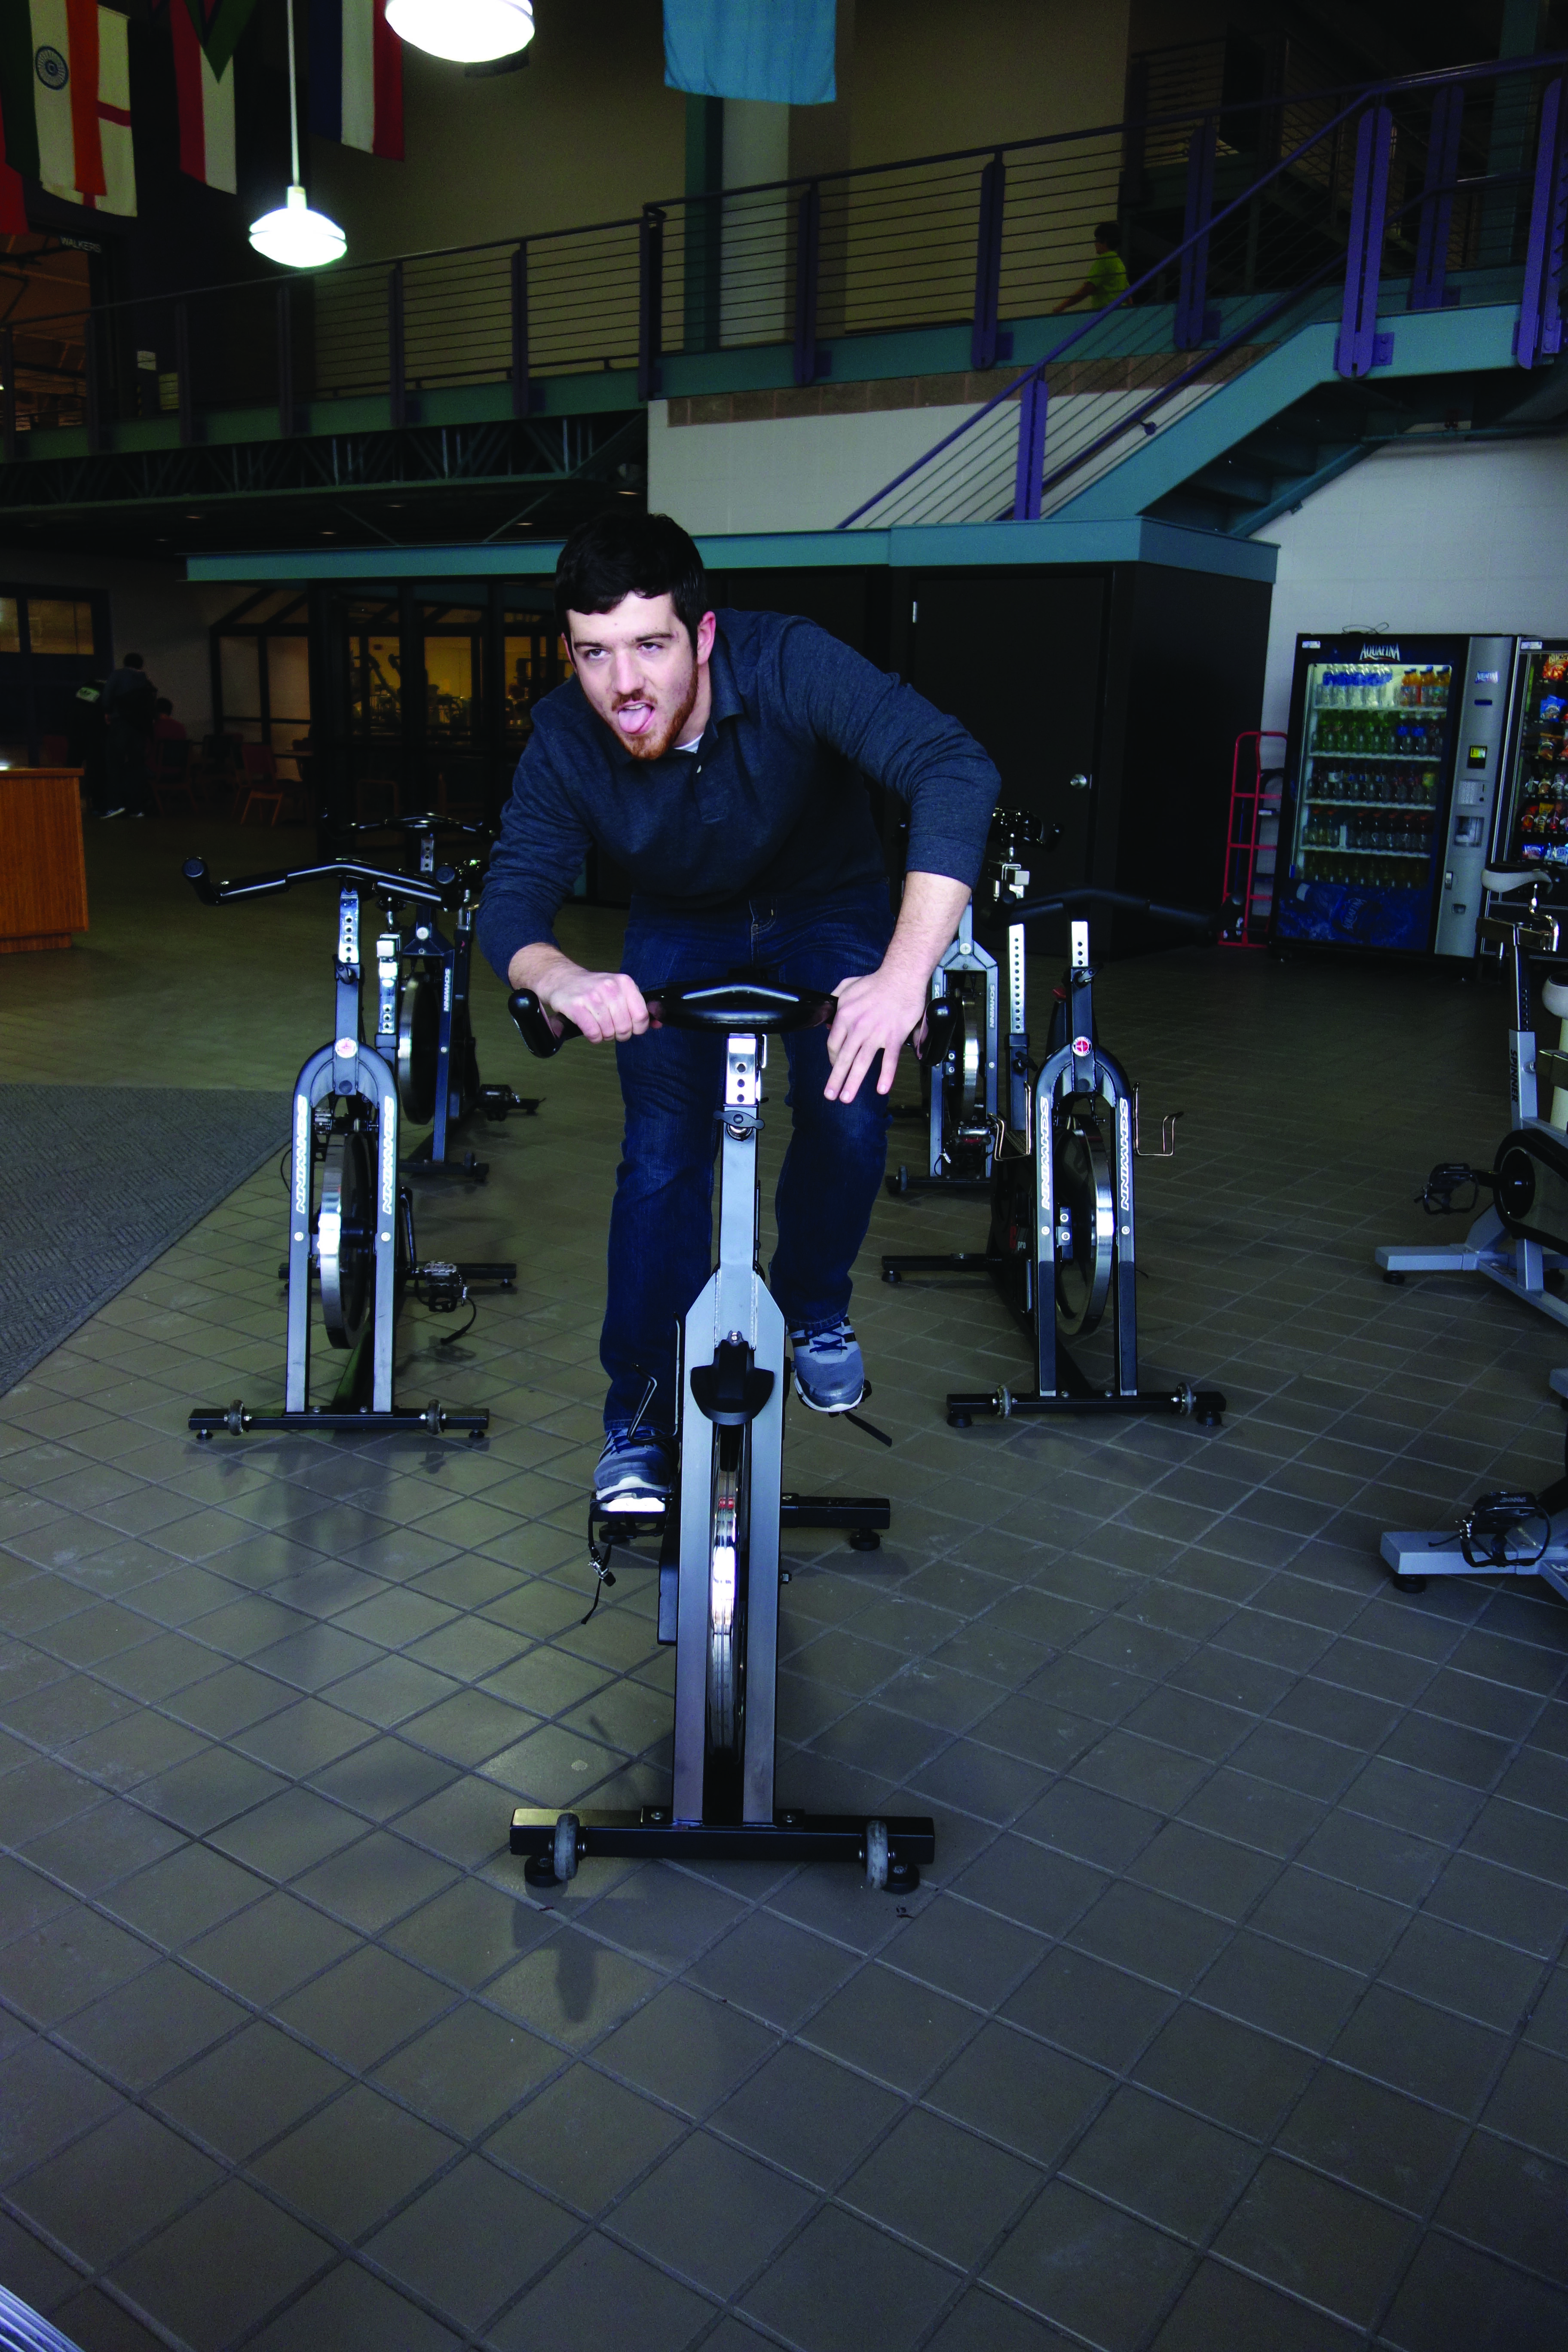 Brian Sutter works out on a stationary bike